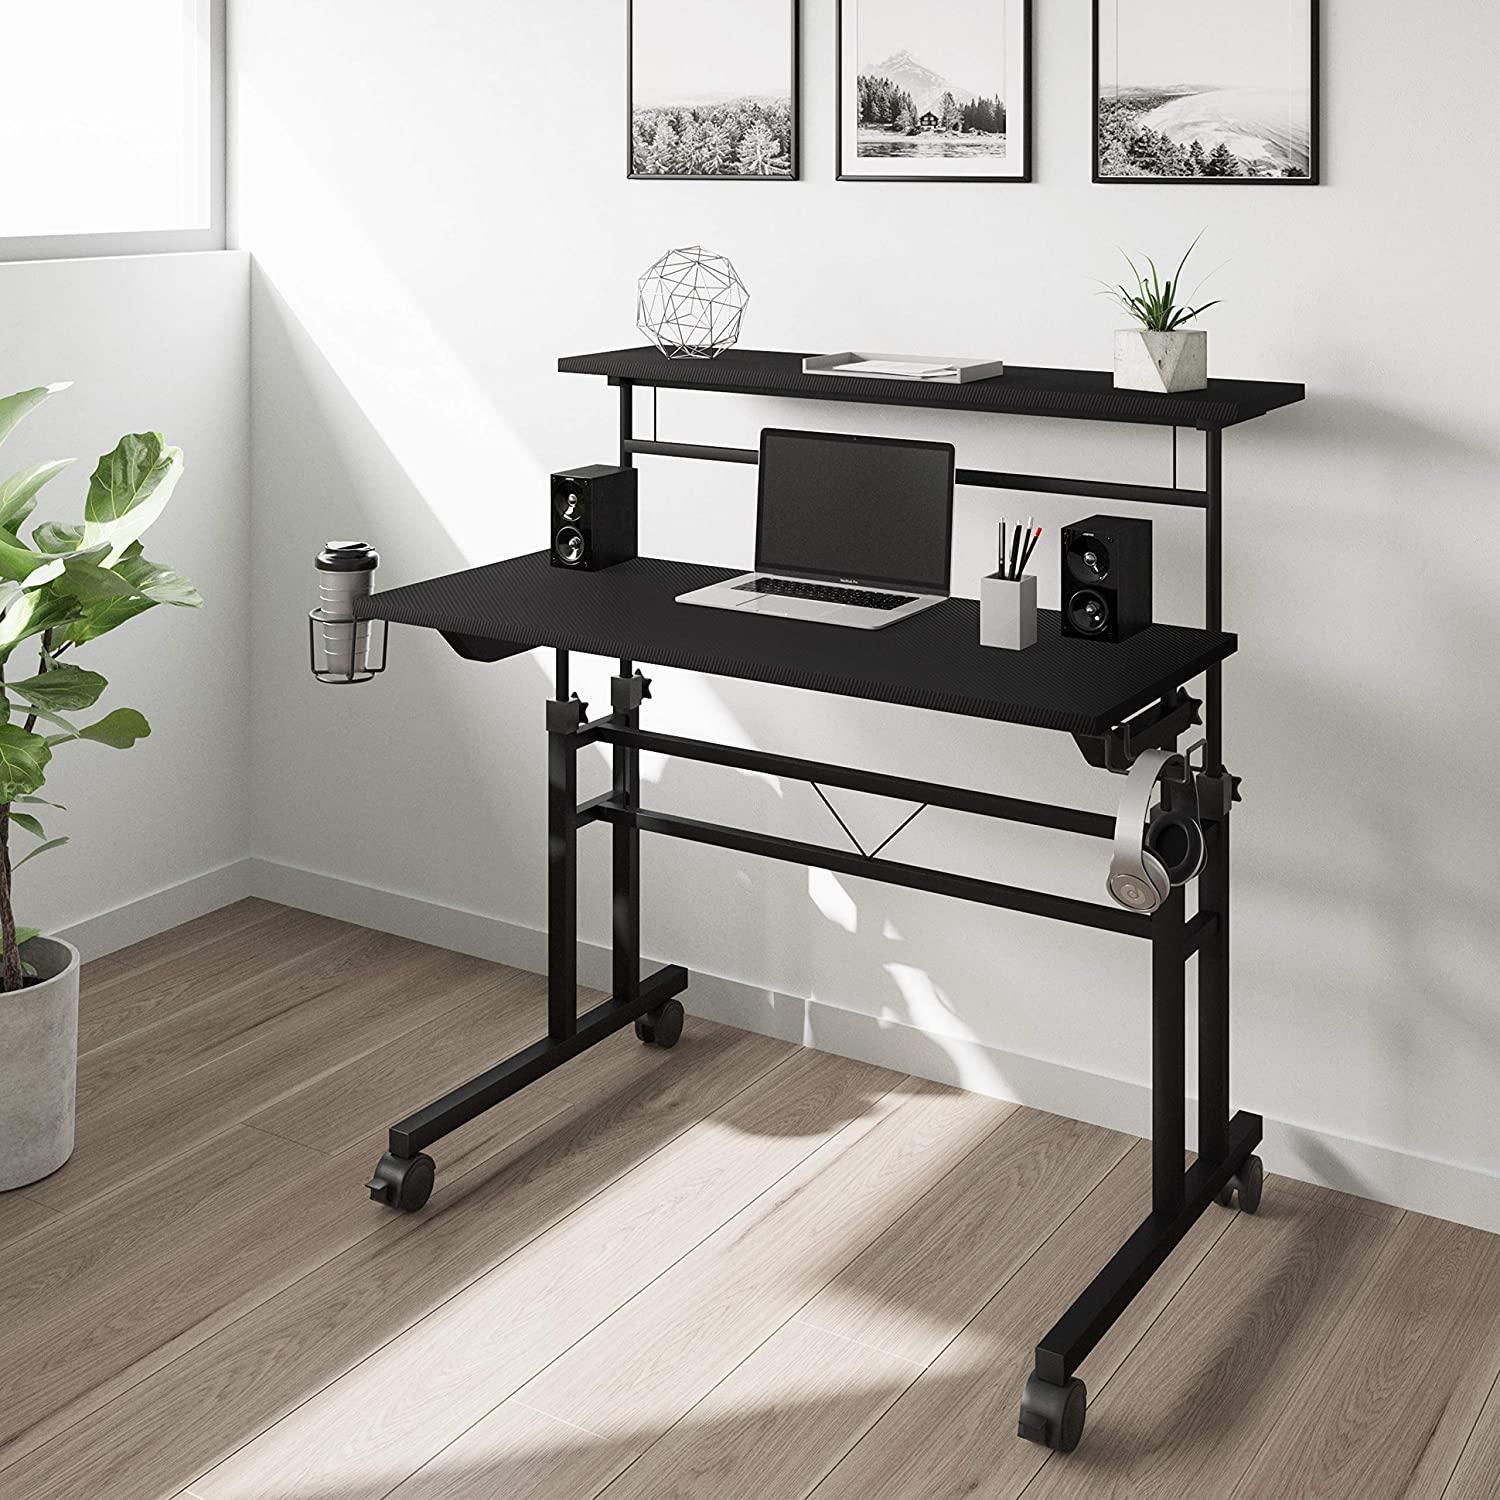 Techni Mobili Rolling Writing Height Adjustable Desktop and Moveable Shelf, Black Desk